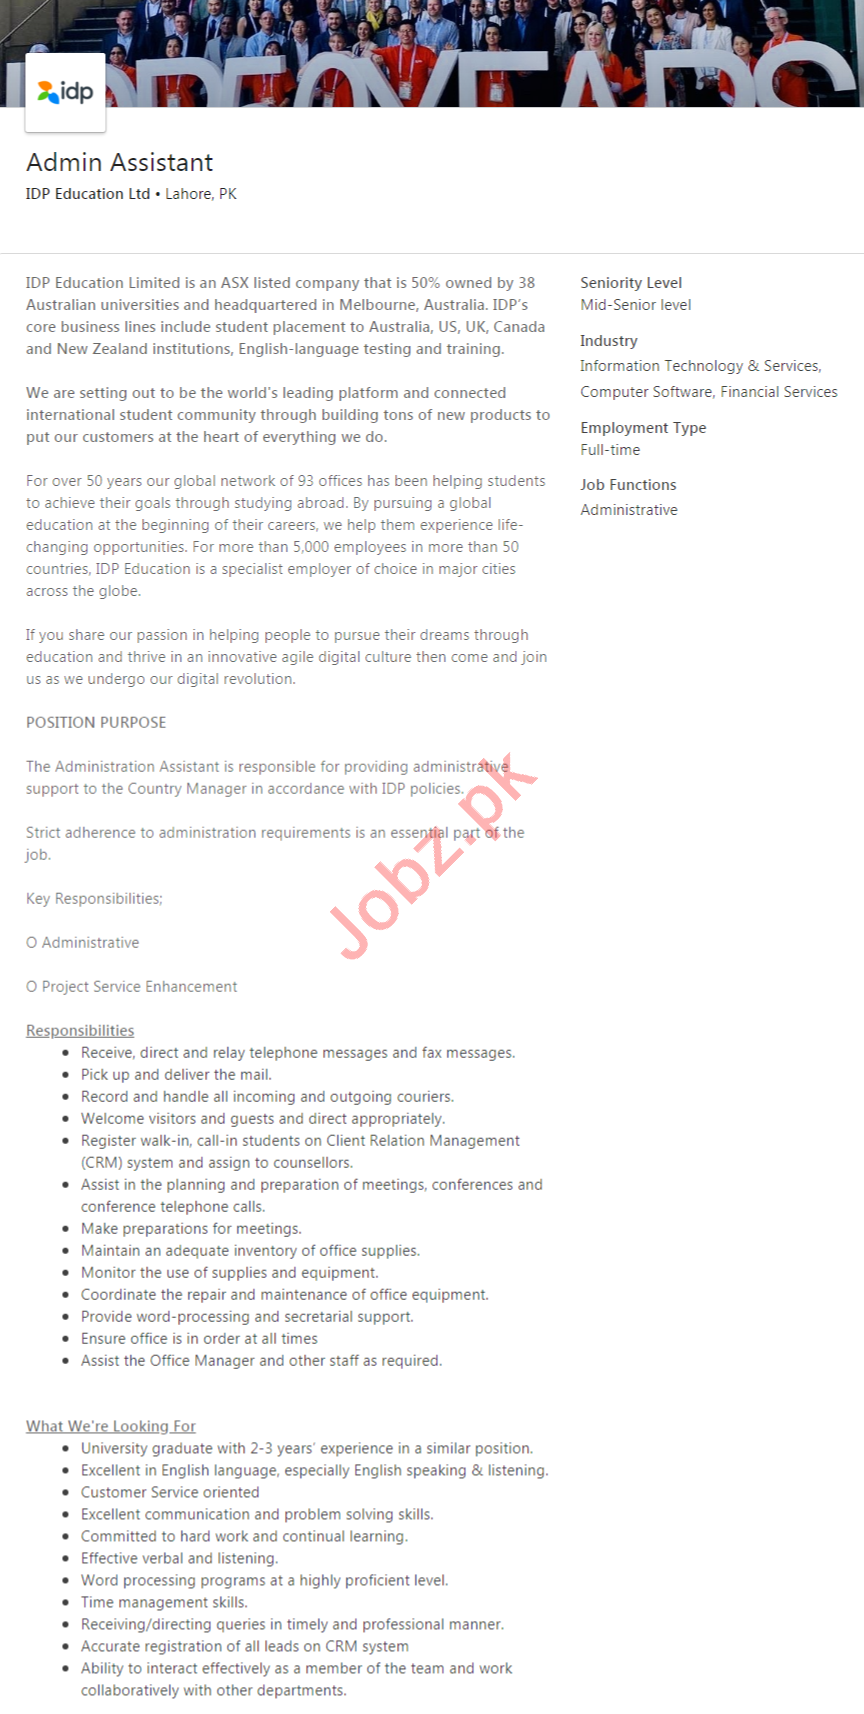 IDP Education Lahore Jobs 2020 for Admin Assistant